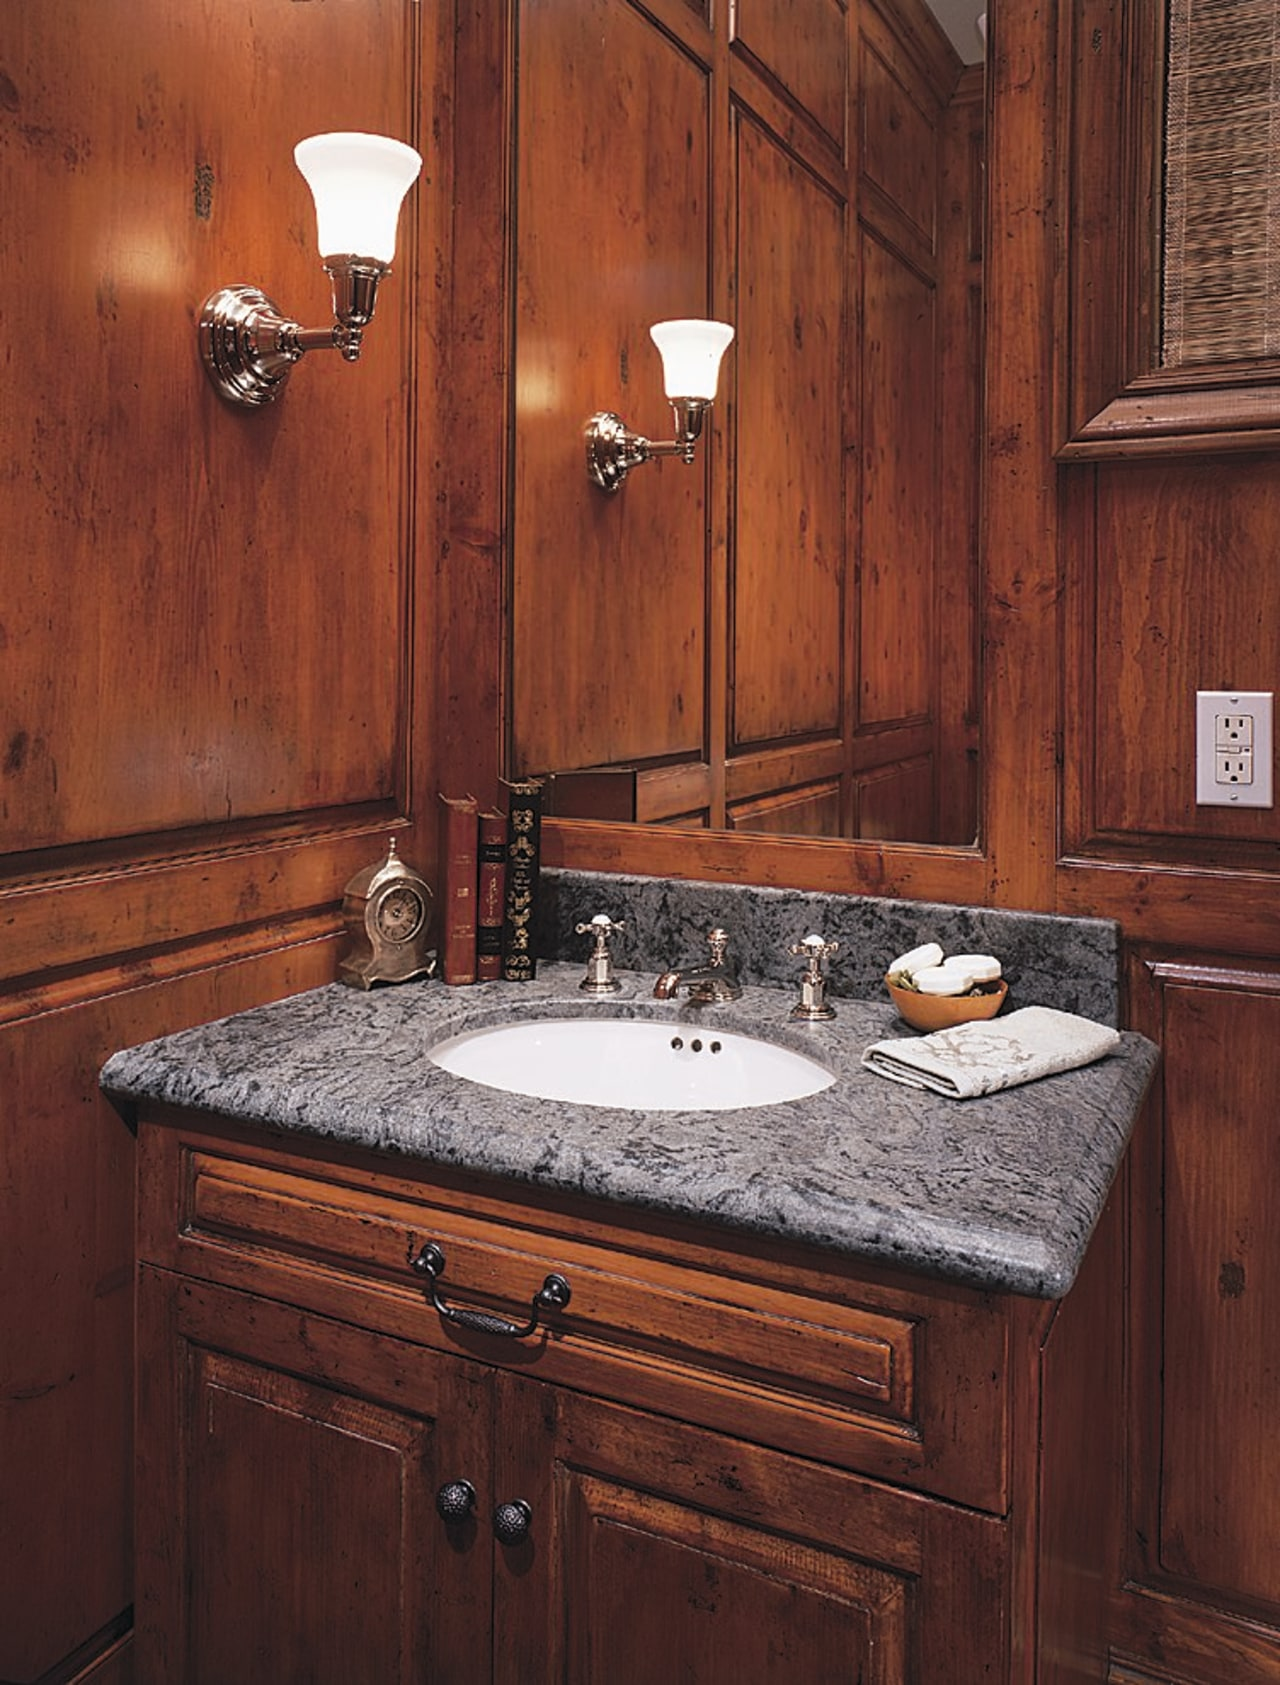 Close view of the hand basin bathroom, bathroom cabinet, cabinetry, countertop, home, interior design, kitchen, room, sink, wood stain, red